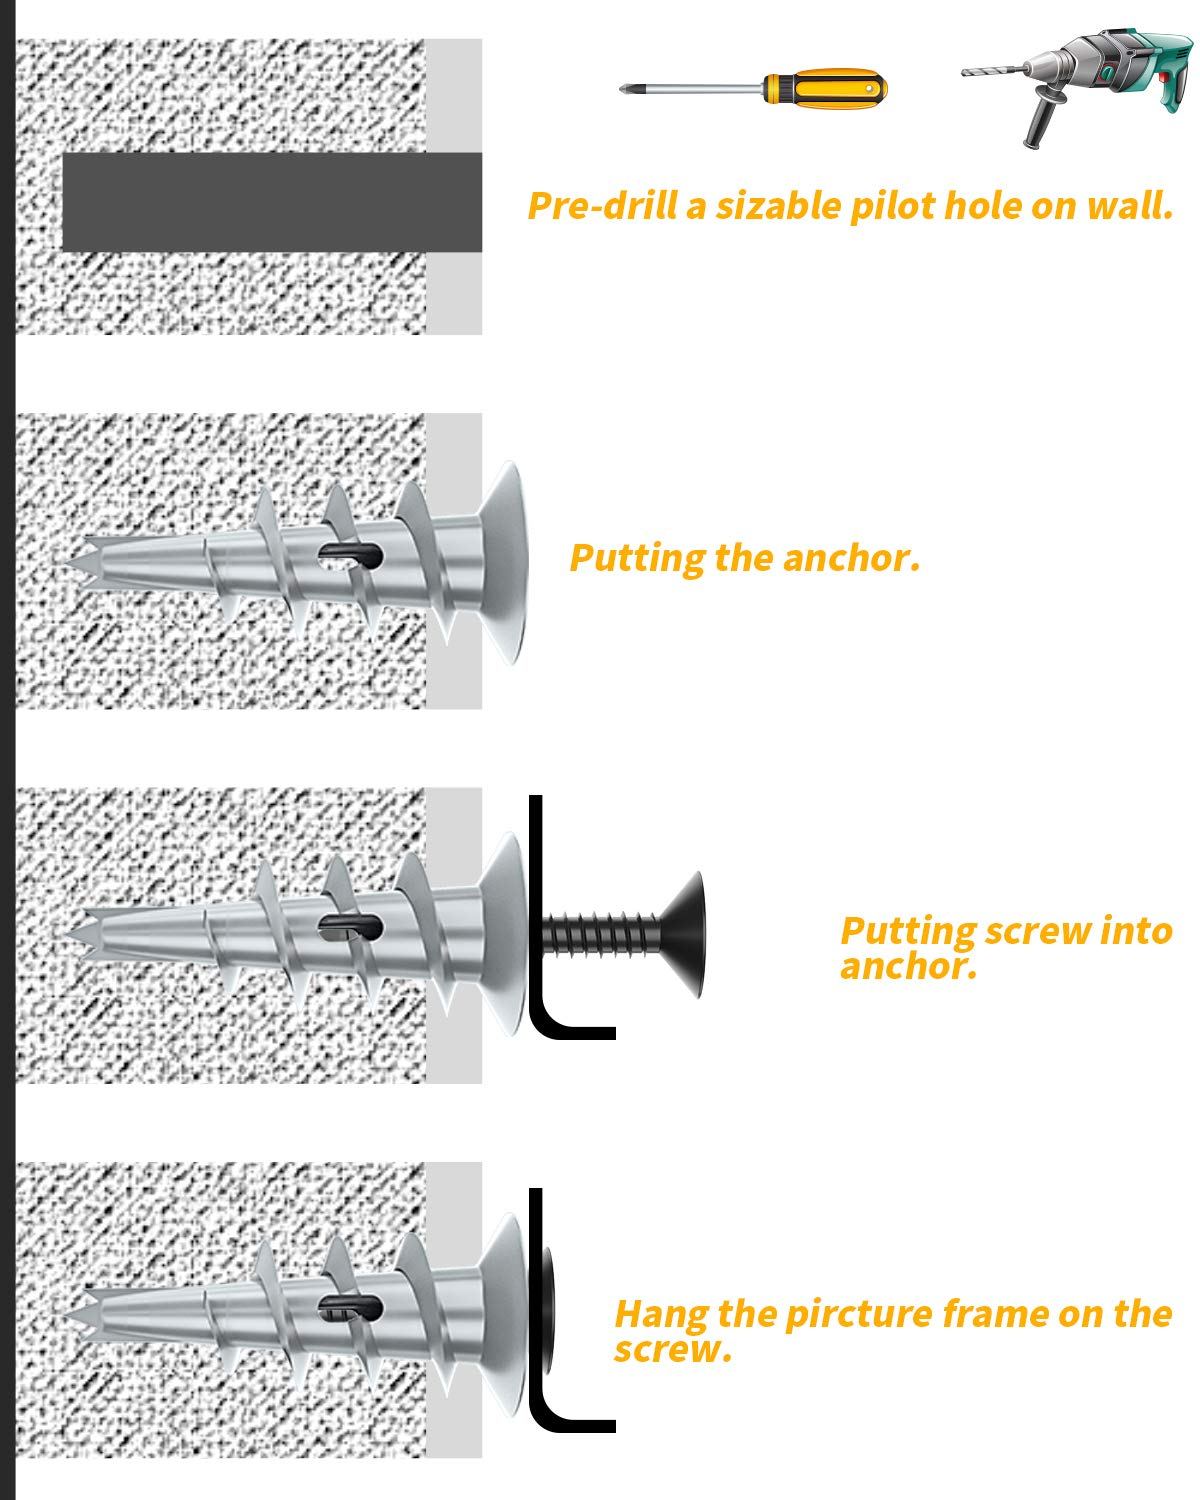 Come with Black Screws Self Drilling Wall Anchors for Drywall 200 Pieces LuckIn Zinc Drywall Anchors with Screws